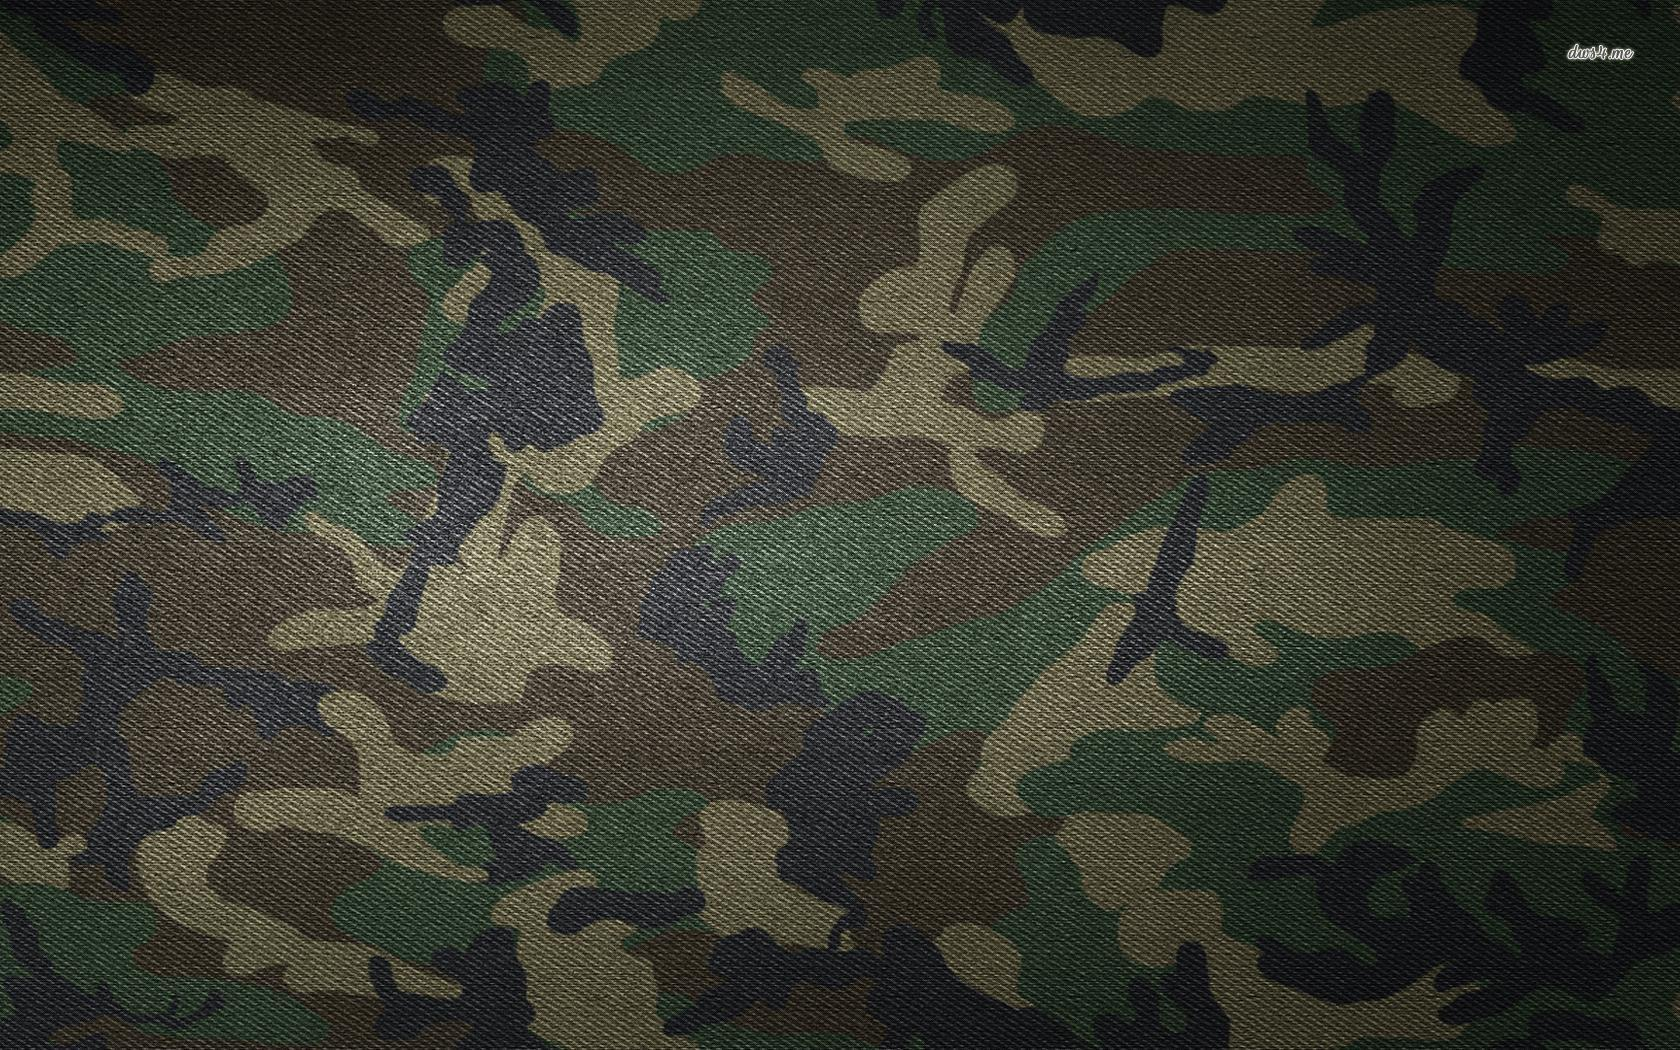 Camo Backgrounds 1680x1050